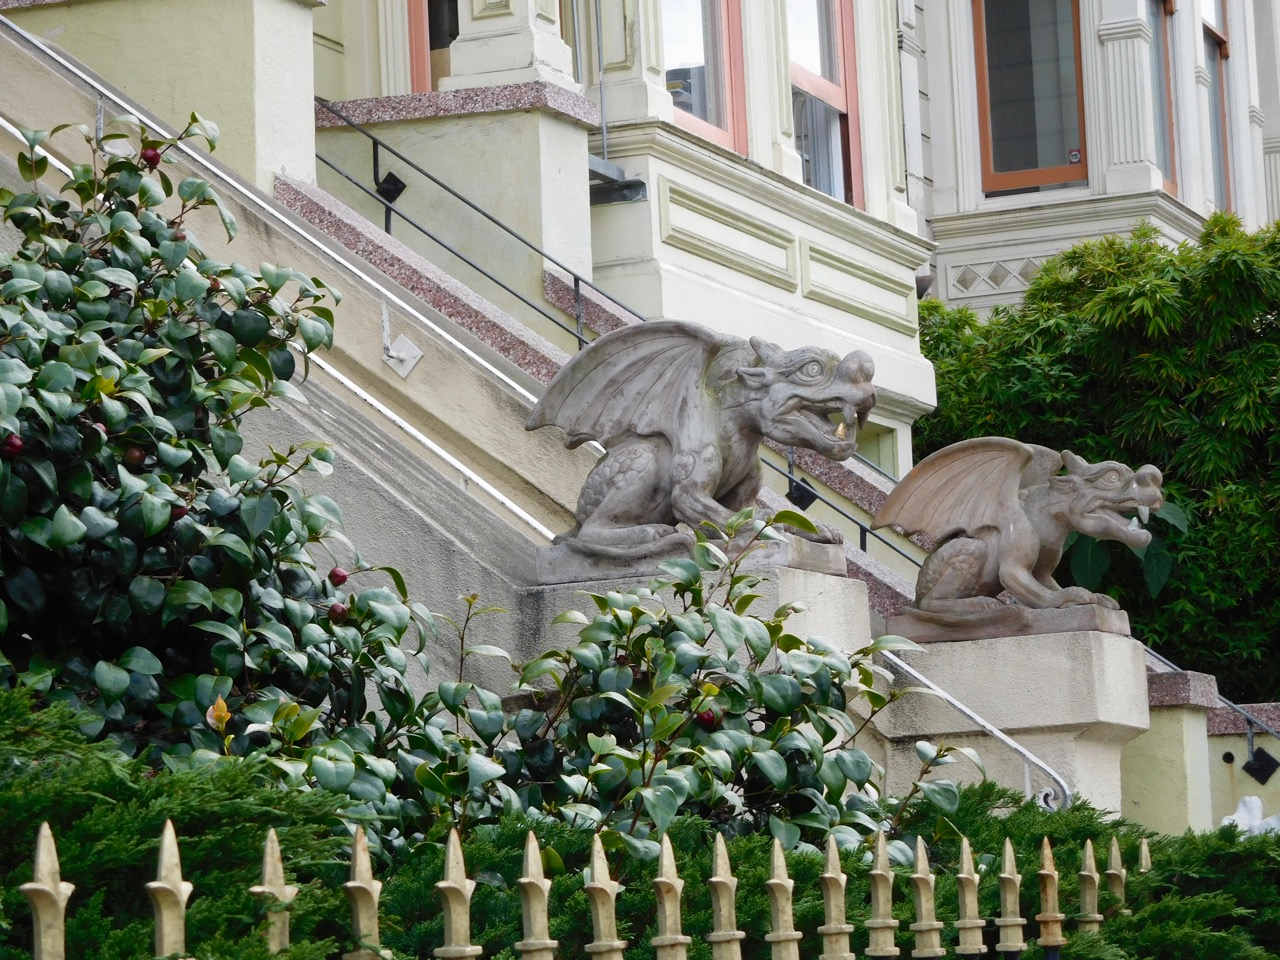 San Francisco Photo Journal - a day in SF (20)